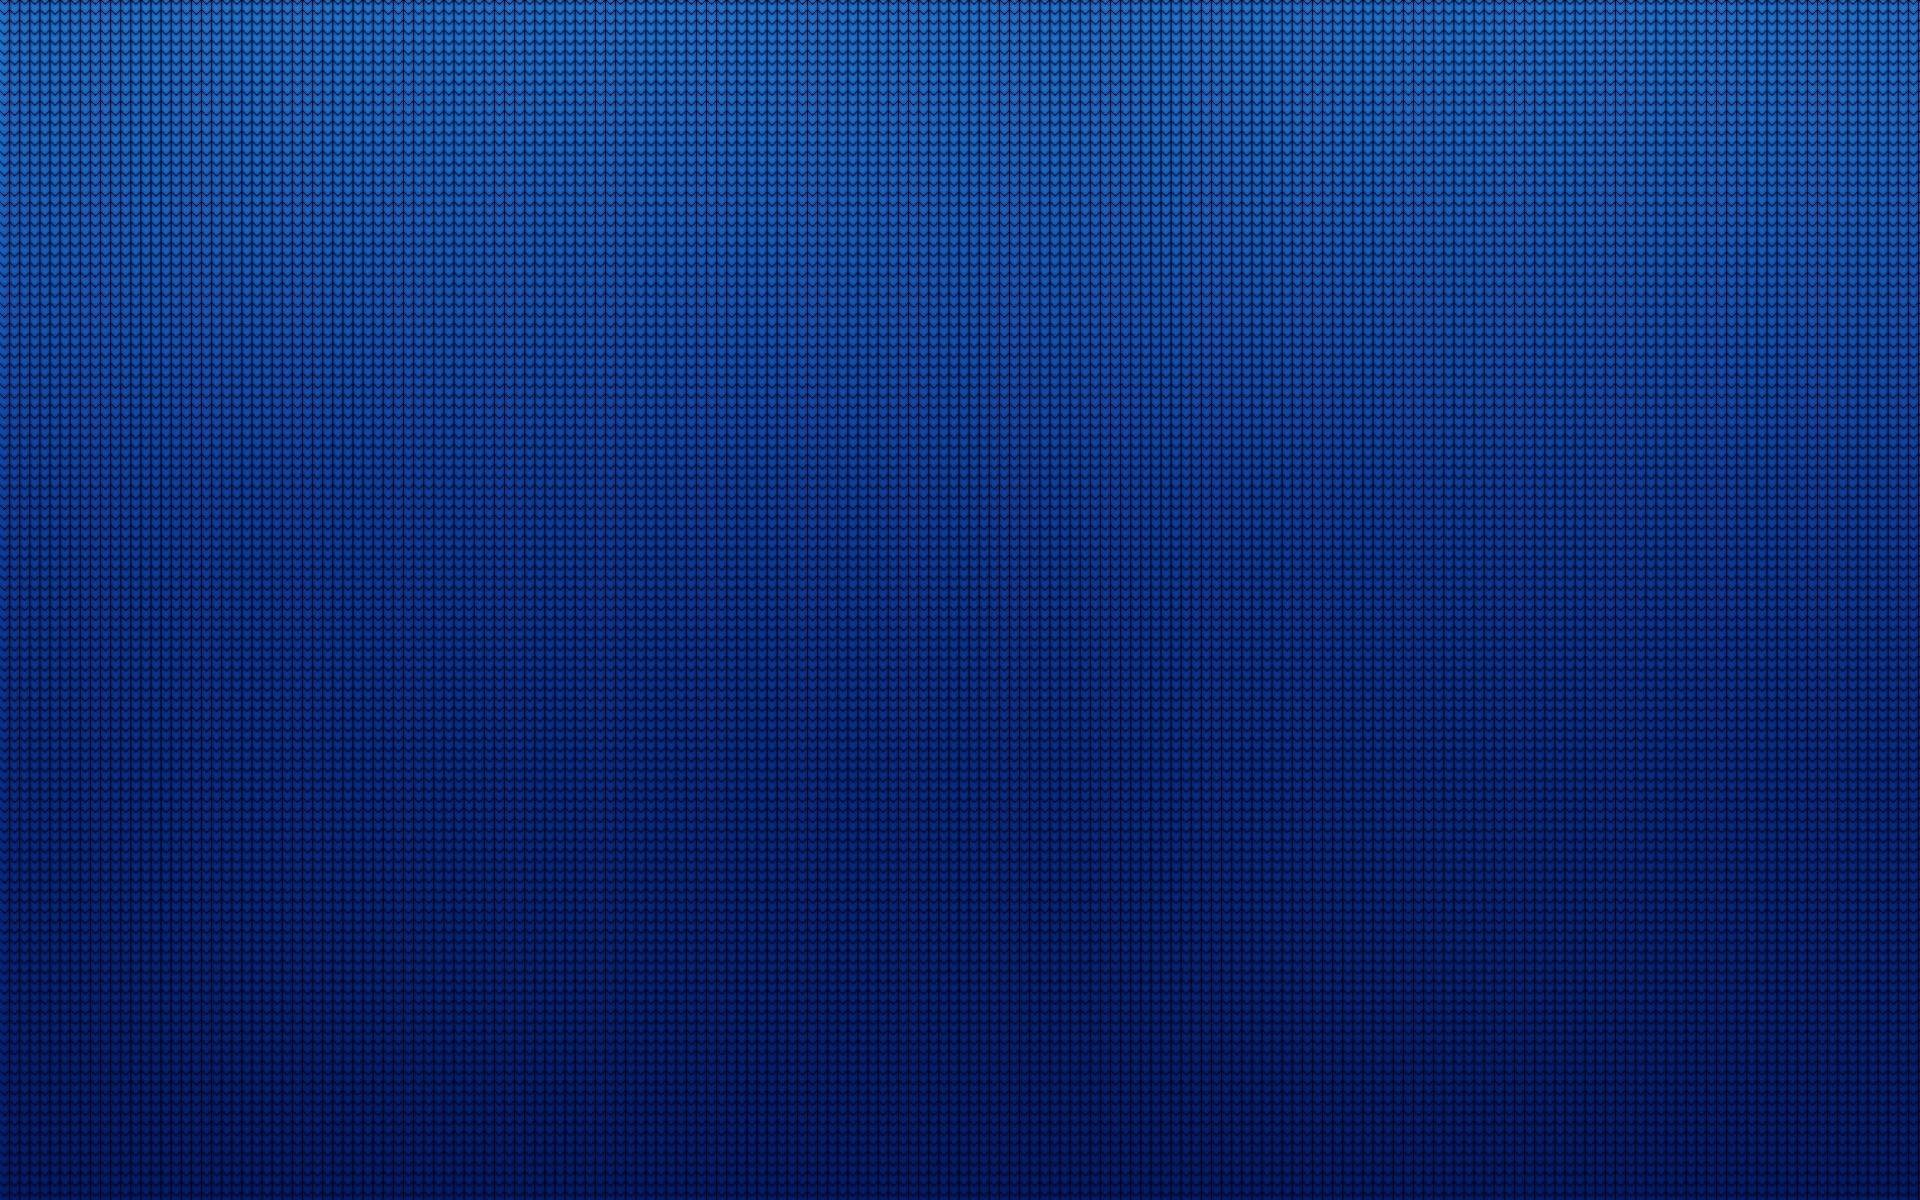 Dark Blue Background Images #1986 Wallpaper | photosfullhd.